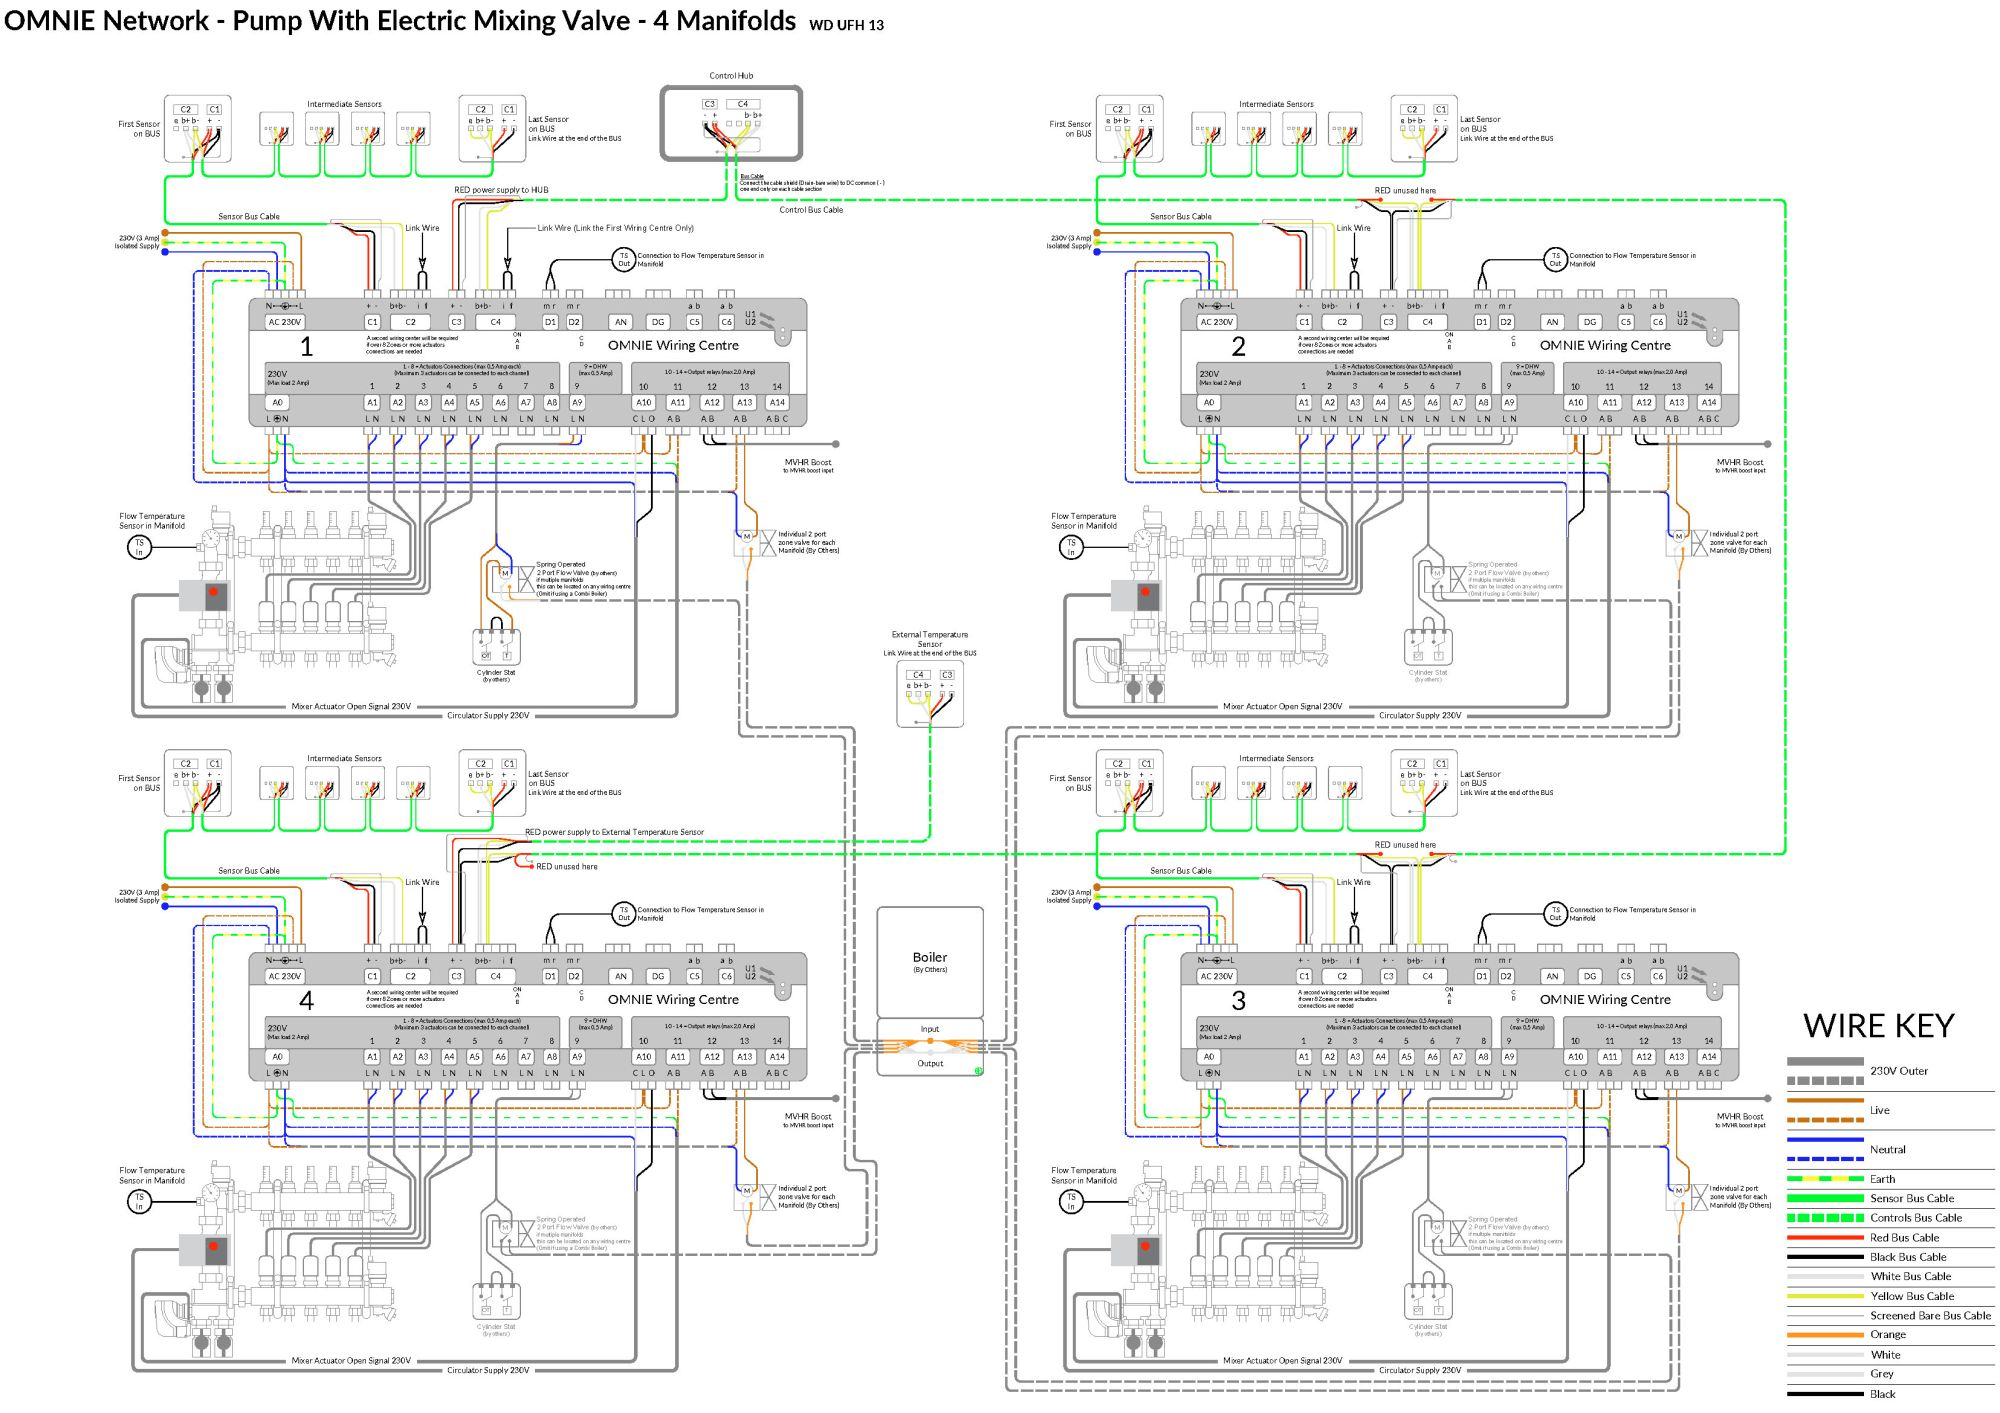 hight resolution of use this wiring diagram for 4 manifolds with electric mixers